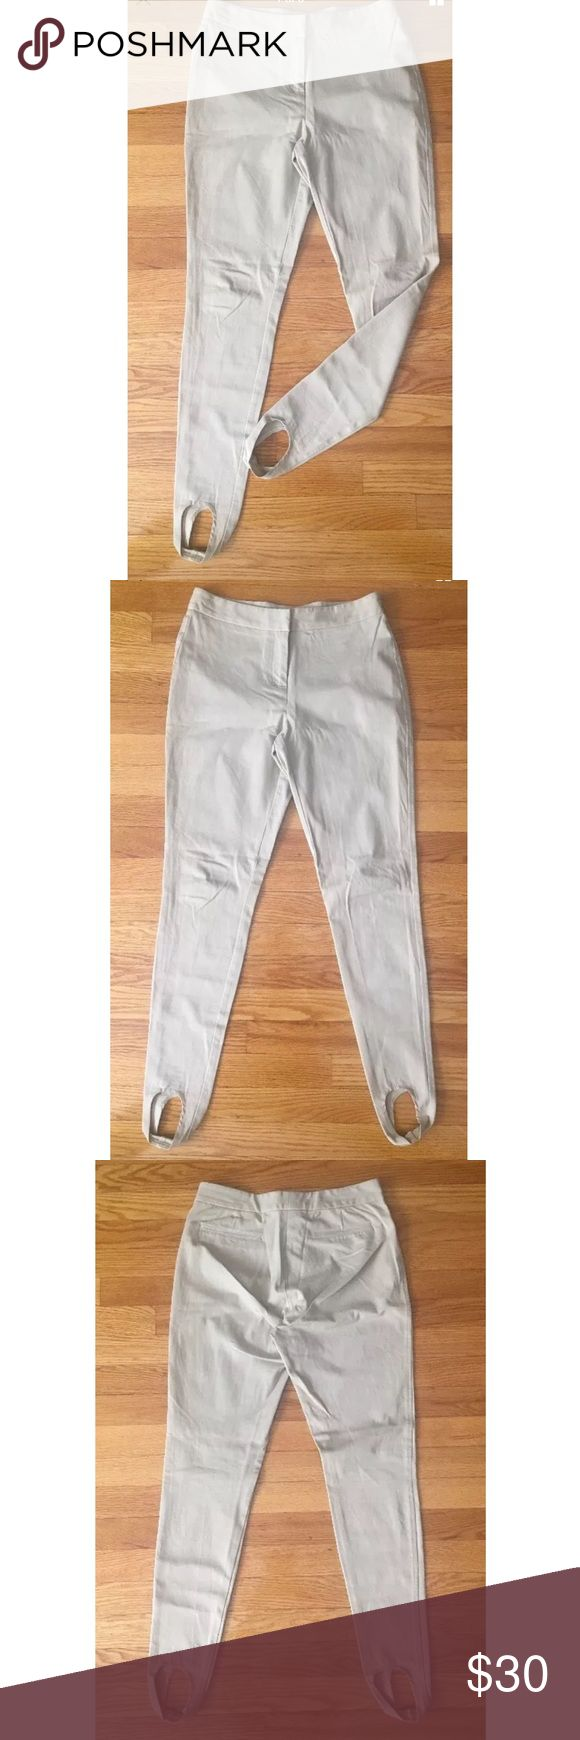 Women's Boston Proper Stirrup pants size 4 Khaki color pants. Stirrup pants. Fake back pocket. Size 4. 95% cotton and 5% spandex. Listed under Zara for exposure. Feel free to leave offers for any of my items in my closet! Zara Pants Trousers